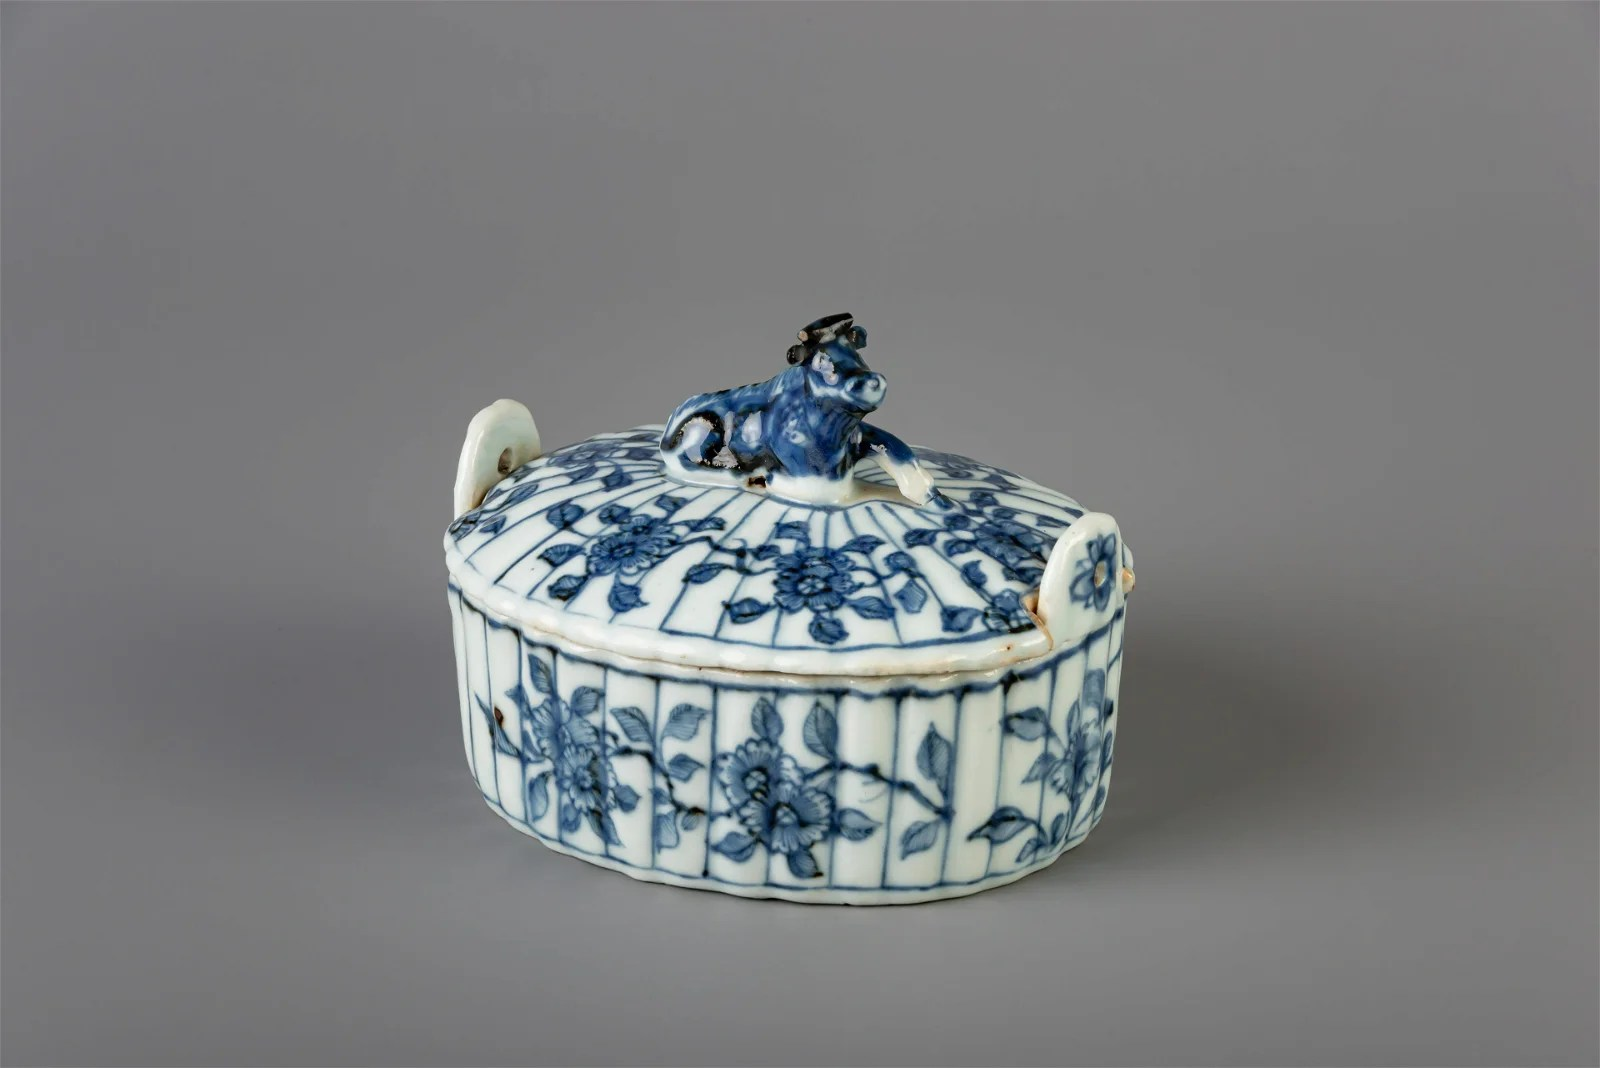 A Chinese blue and white butter tub after a Dutch Delft